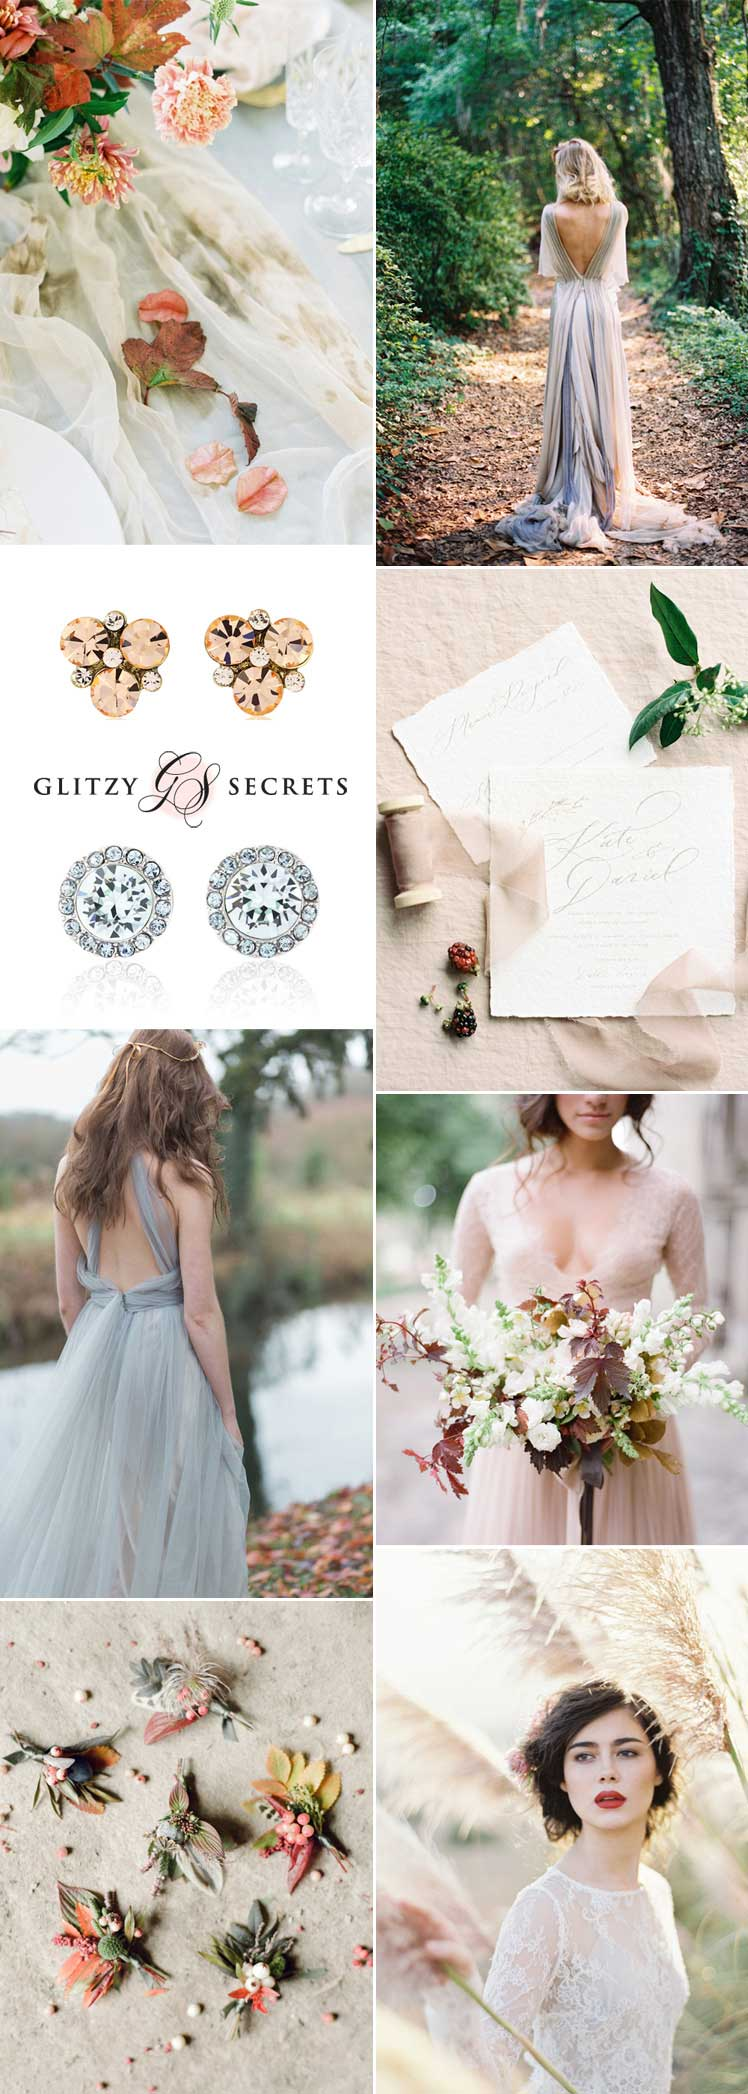 Pale hues autumn wedding inspiration